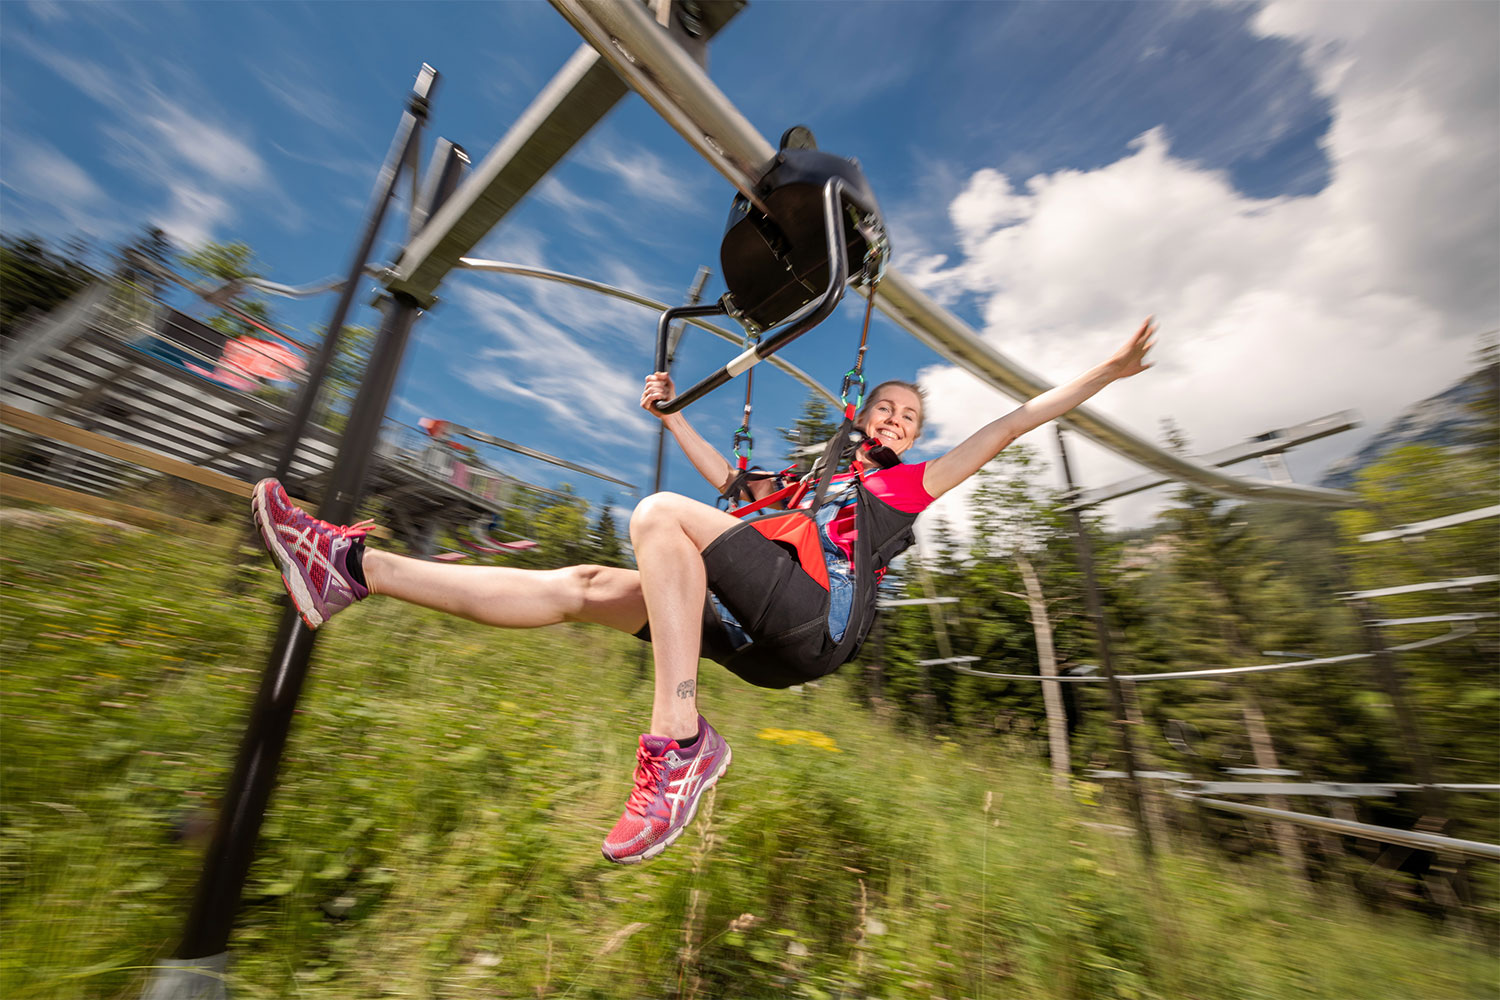 Flying Coaster in Gröbming am Dachstein – Bild: © www.flyingcoaster.at / Christoph Huber